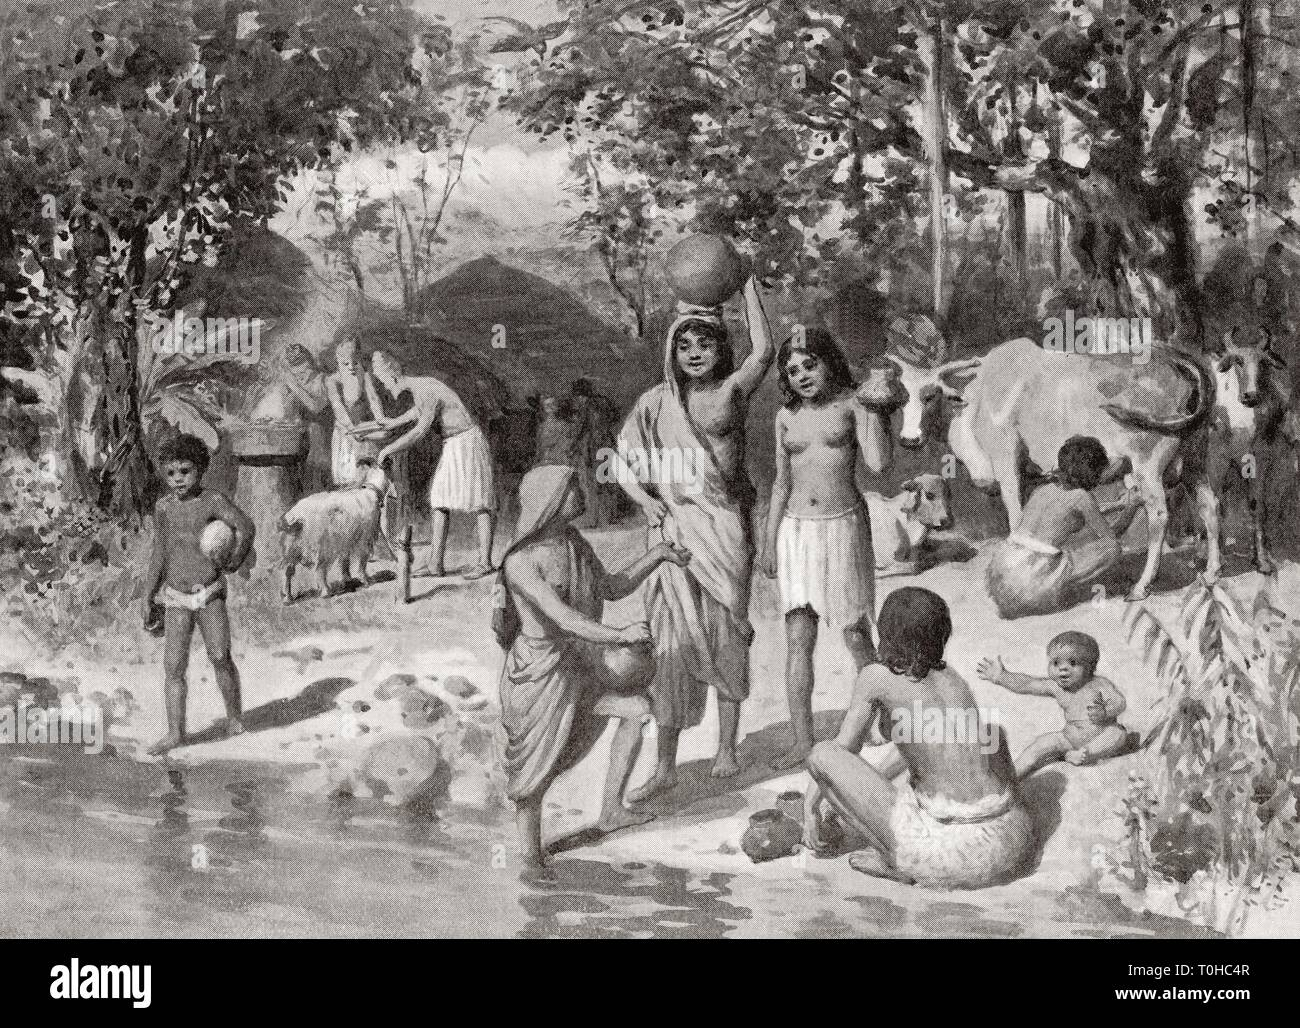 Indo Aryan settlement in ancient India - Stock Image